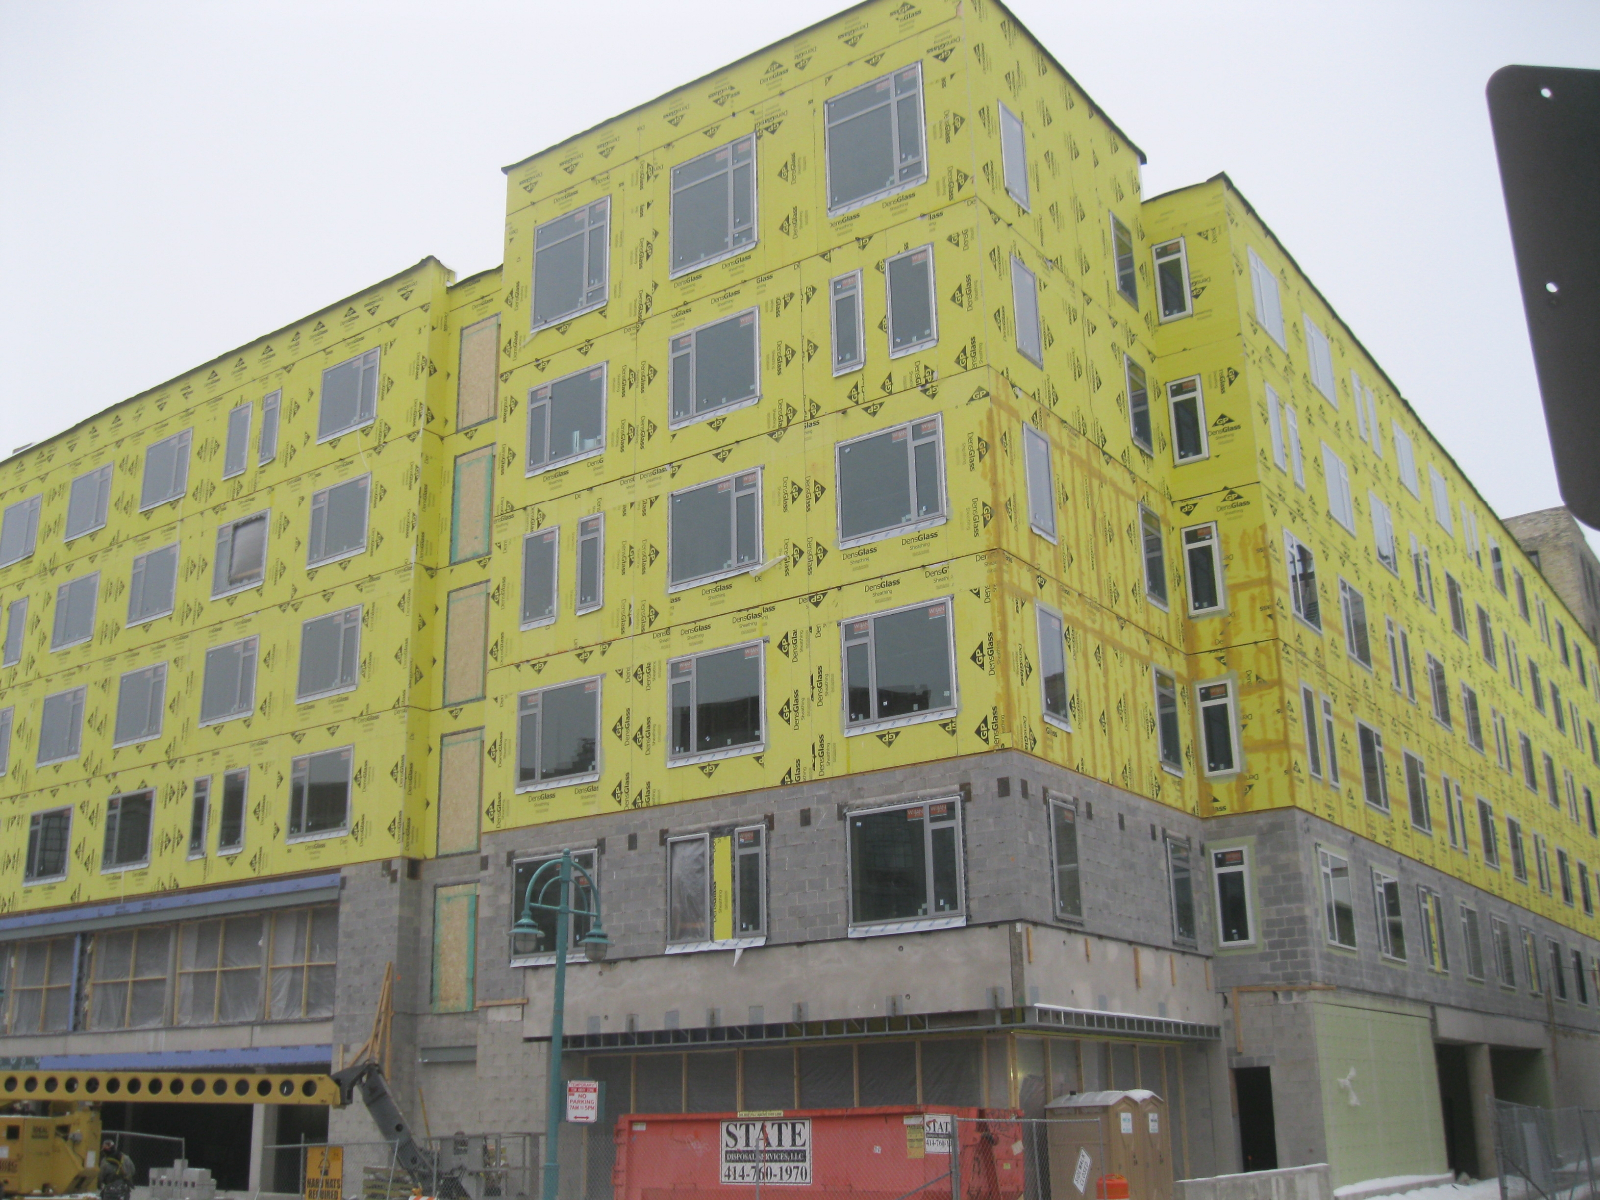 Soon MIAD students will be living here.